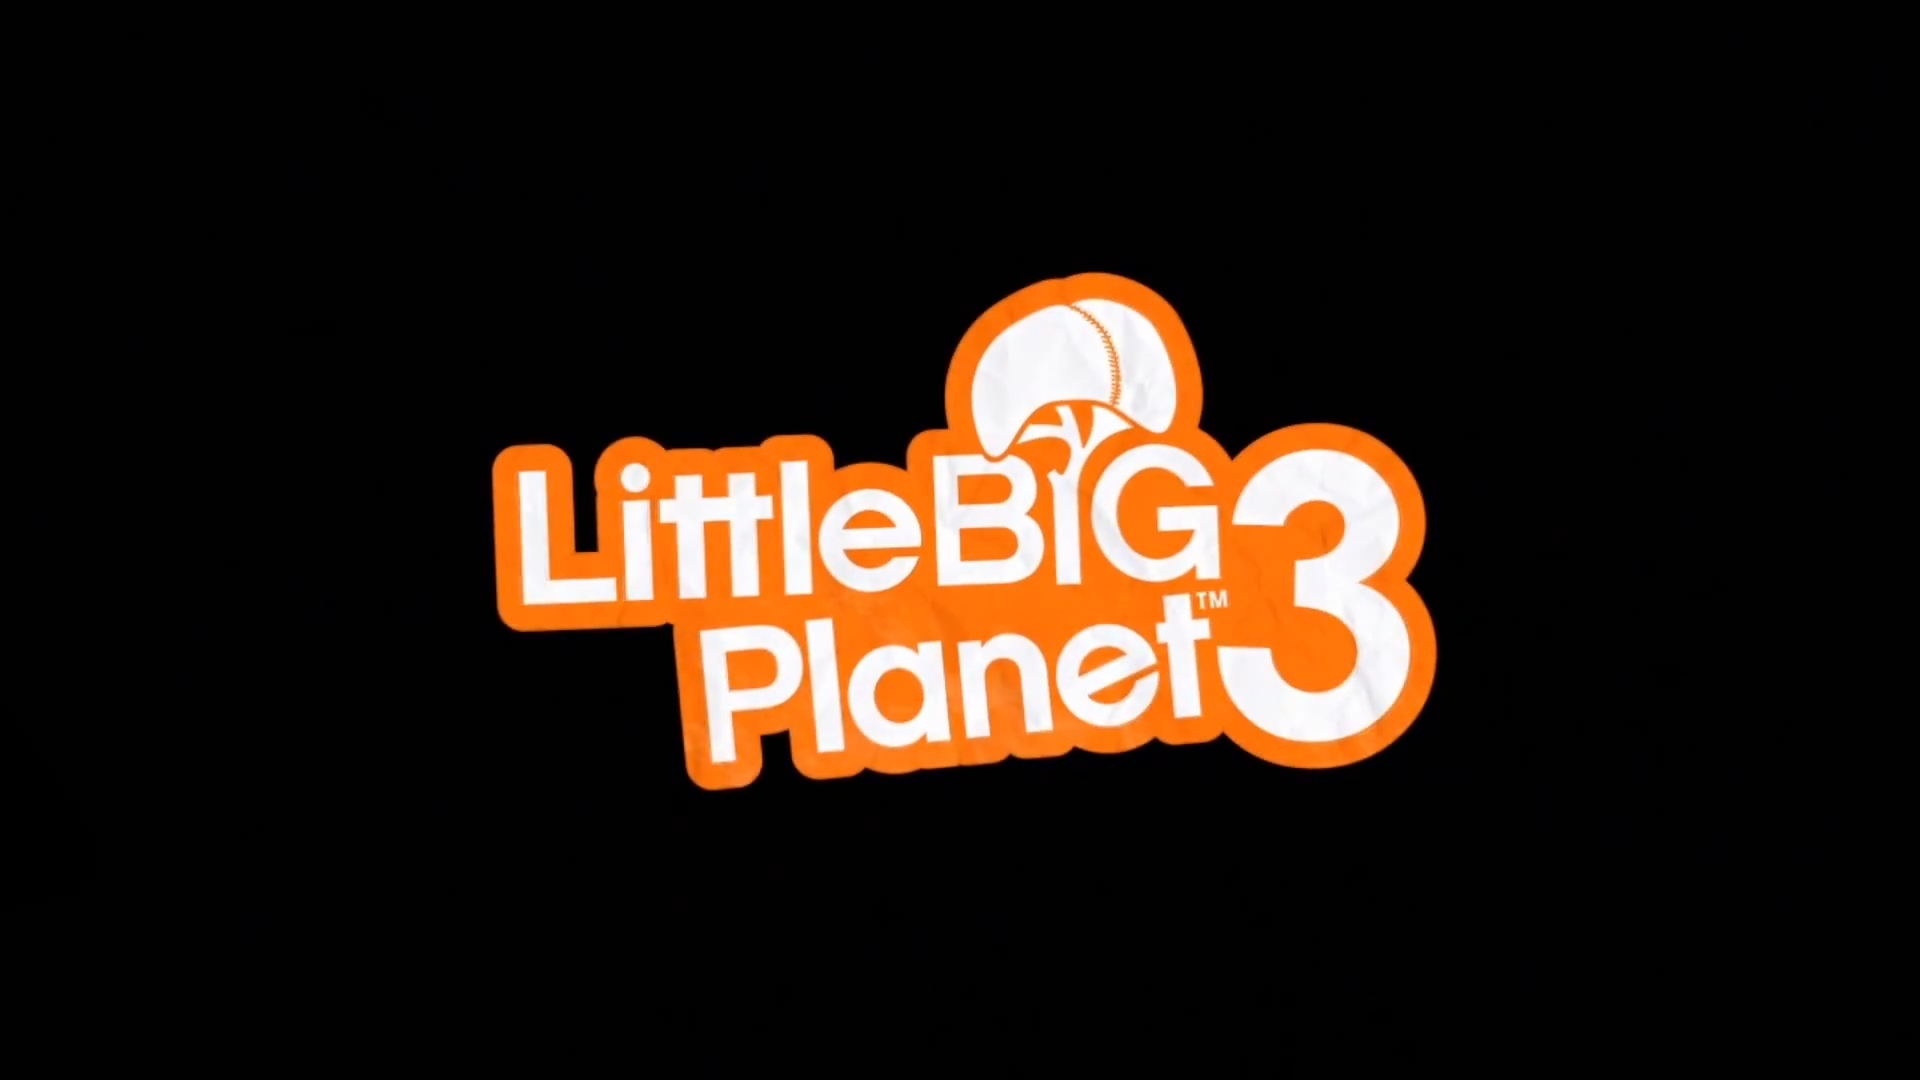 http://img2.wikia.nocookie.net/__cb20140610142829/littlebigplanet/es/images/4/43/LBP3_Logo.png